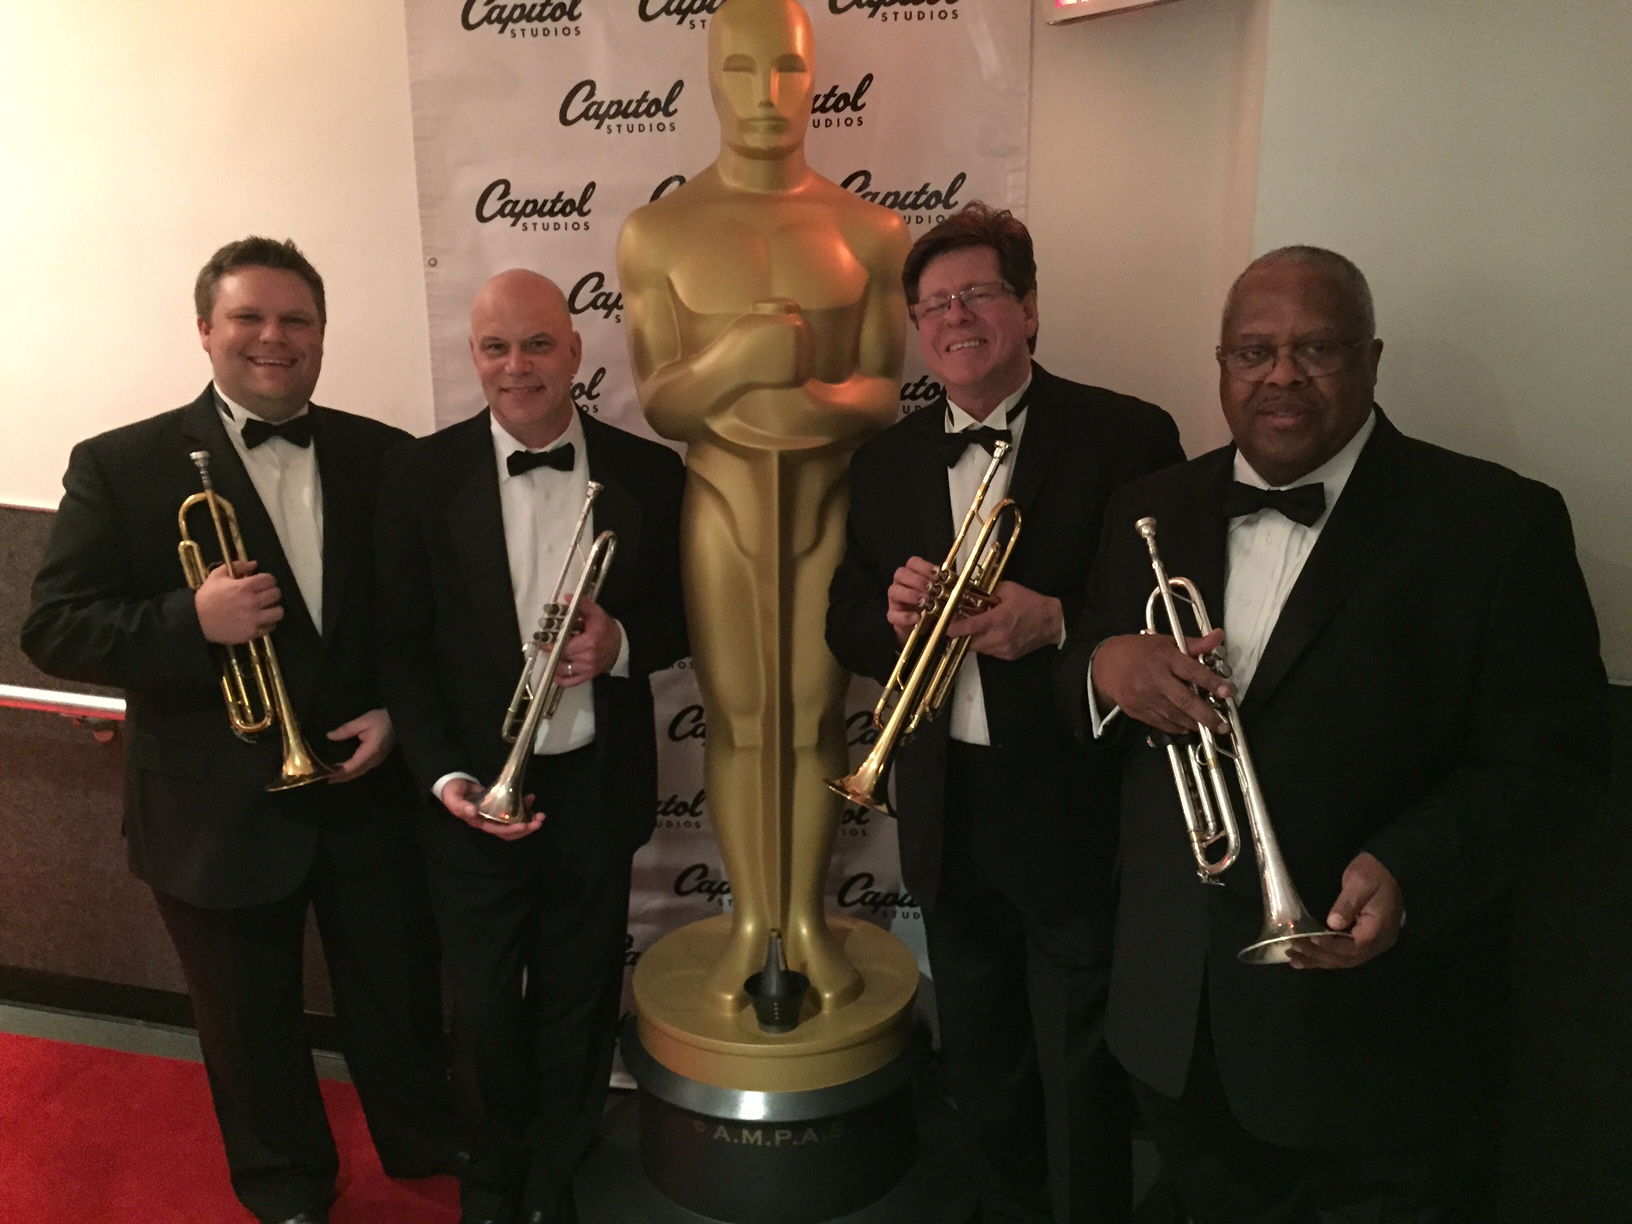 The 87th Academy Awards Gala (Oscars) trumpet section